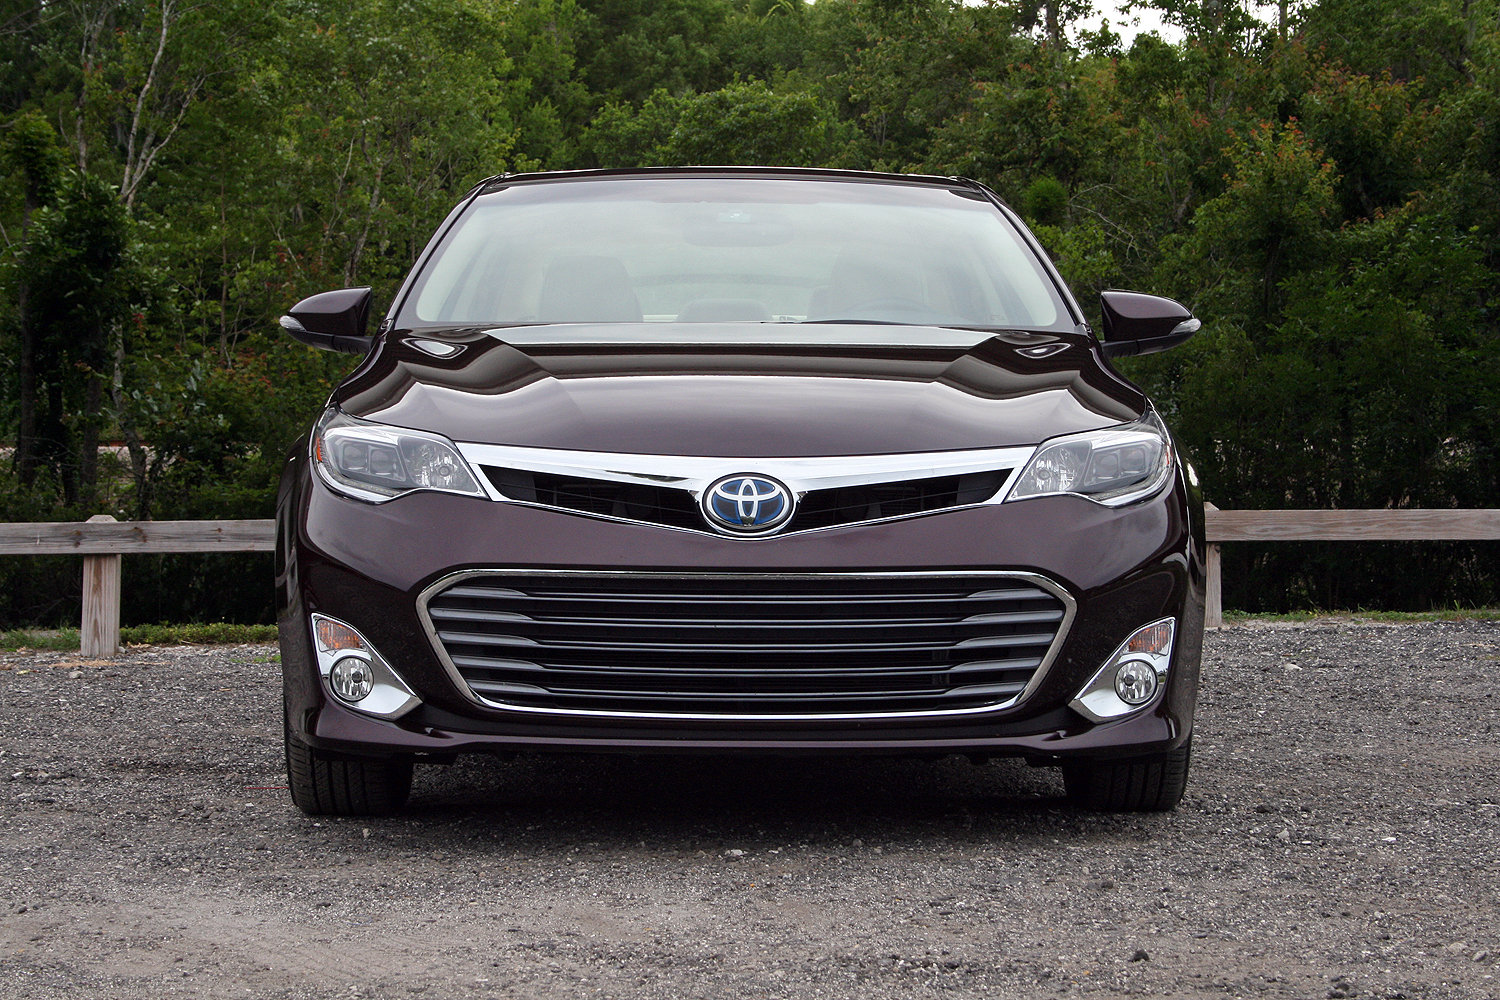 2015 toyota avalon hybrid driven review gallery 632306 top speed. Black Bedroom Furniture Sets. Home Design Ideas